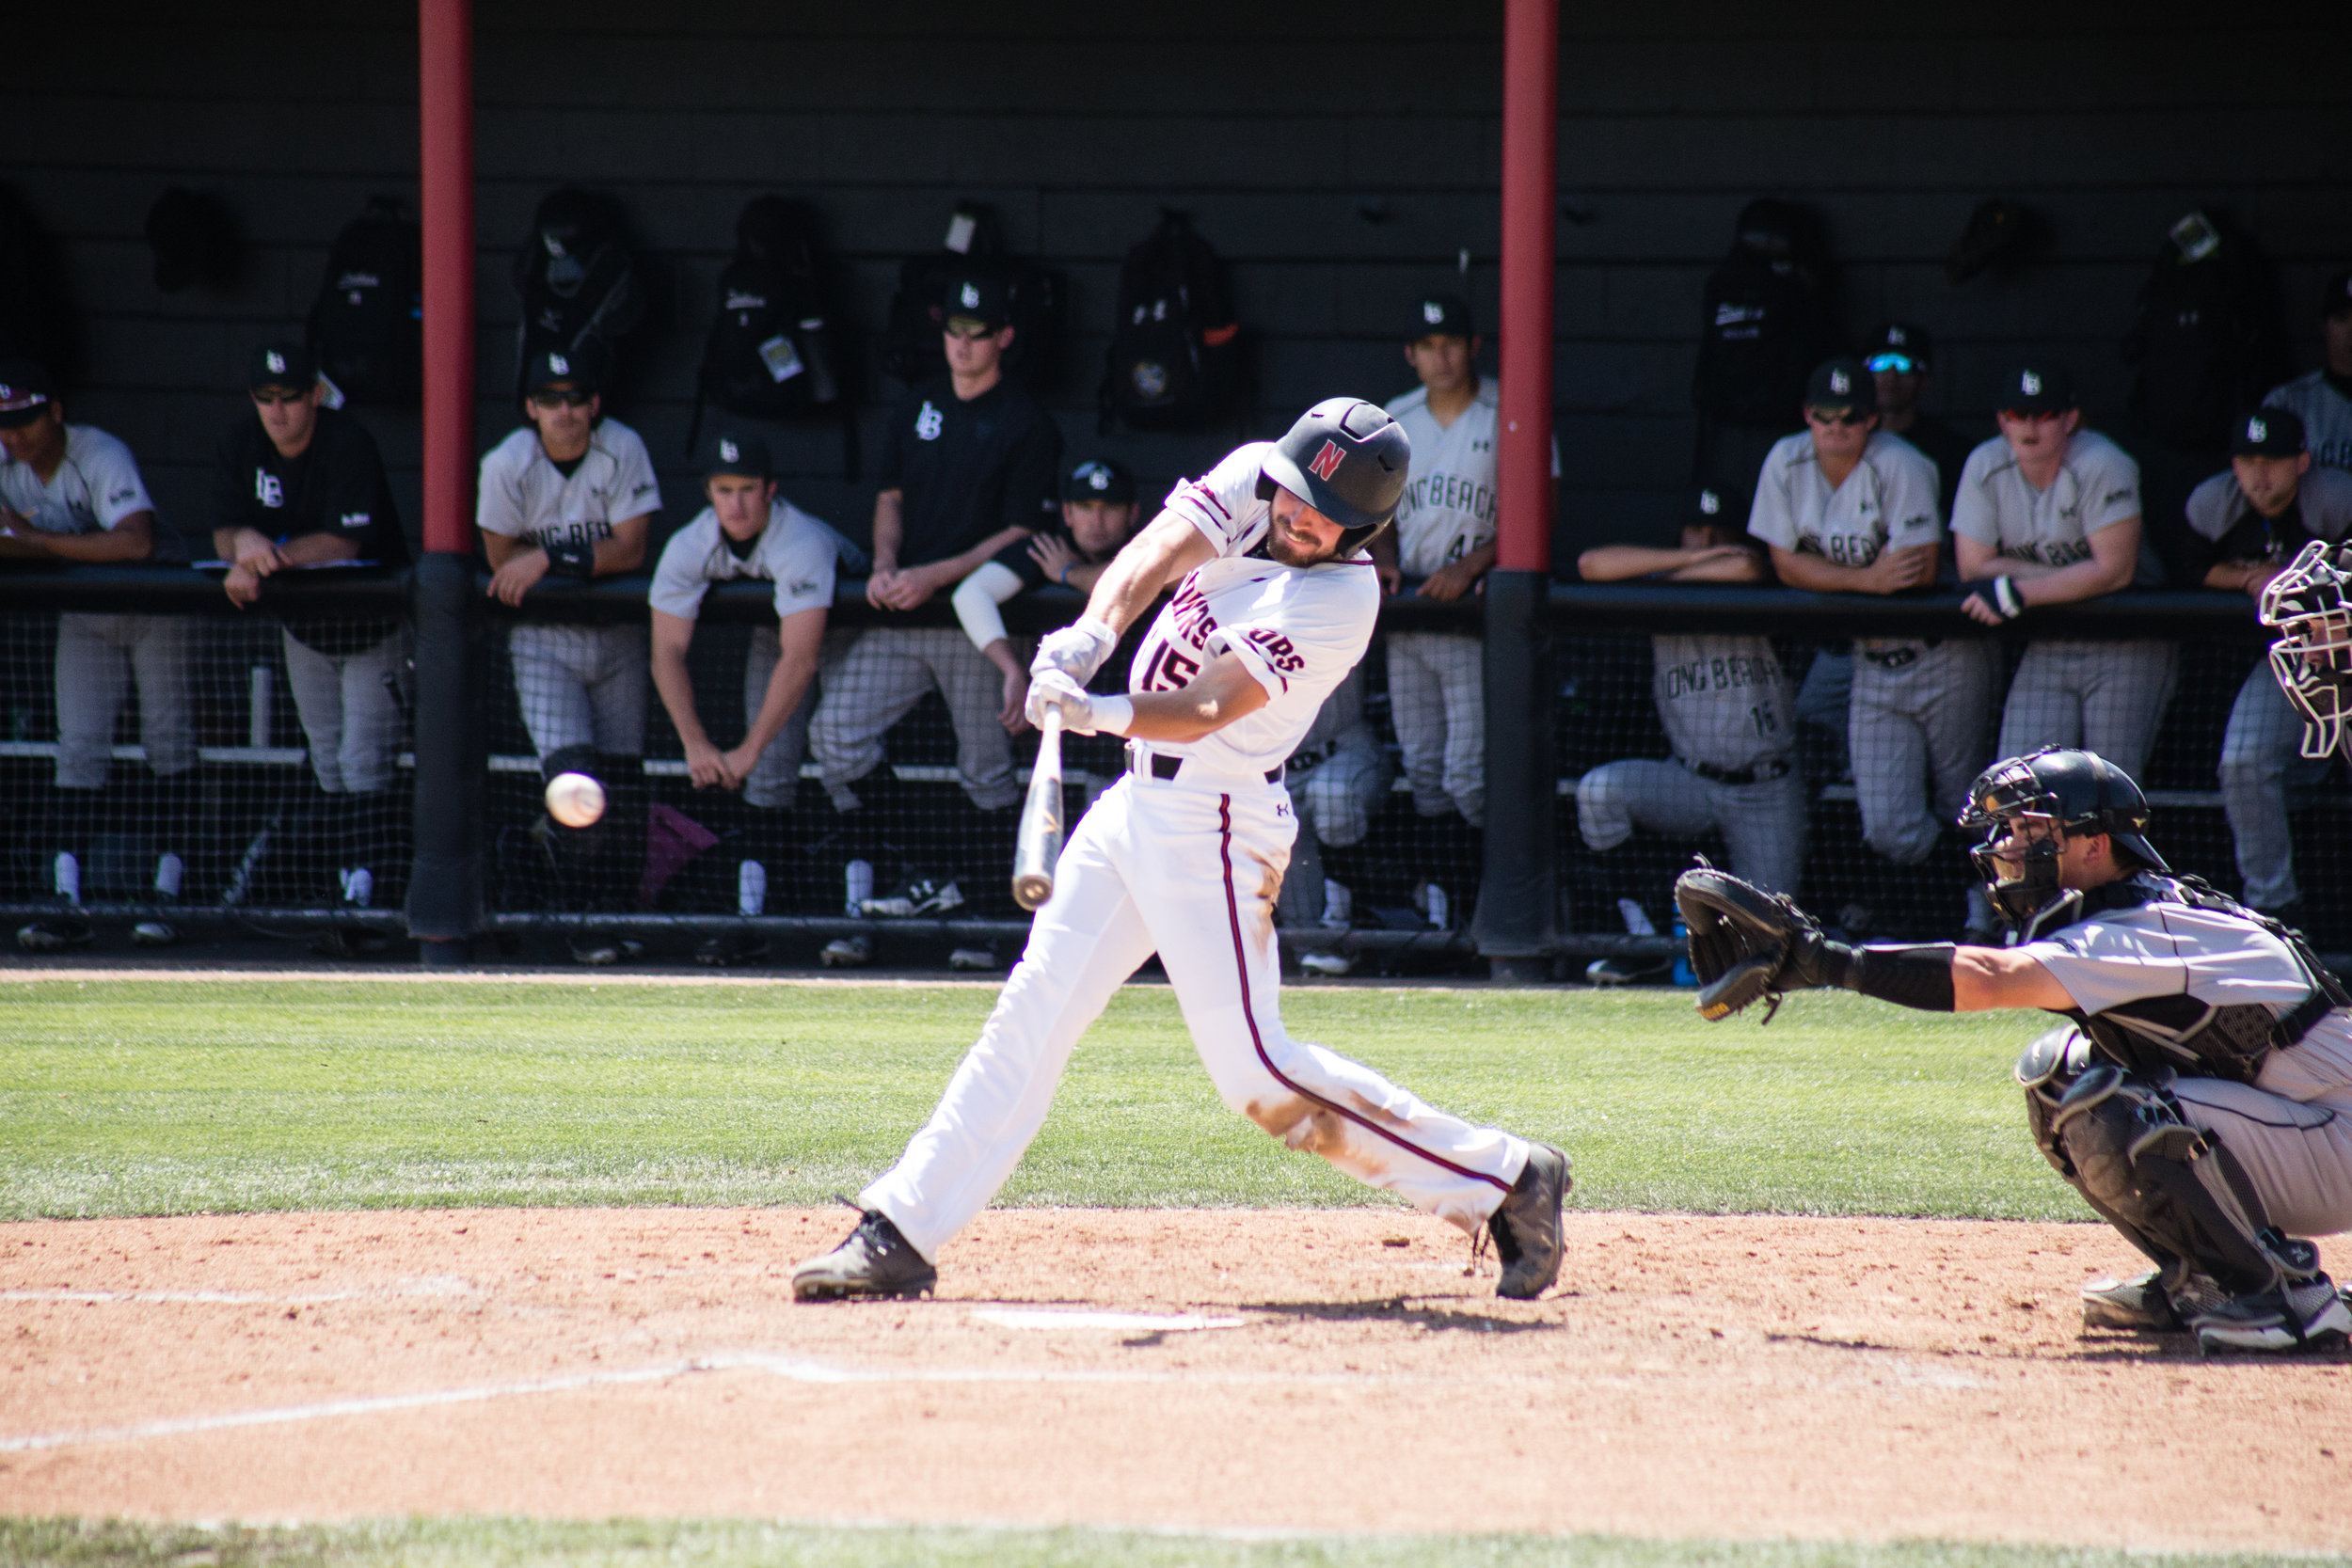 2018_04_14 - Baseball vs Long Beach State (max reso)-26.jpg